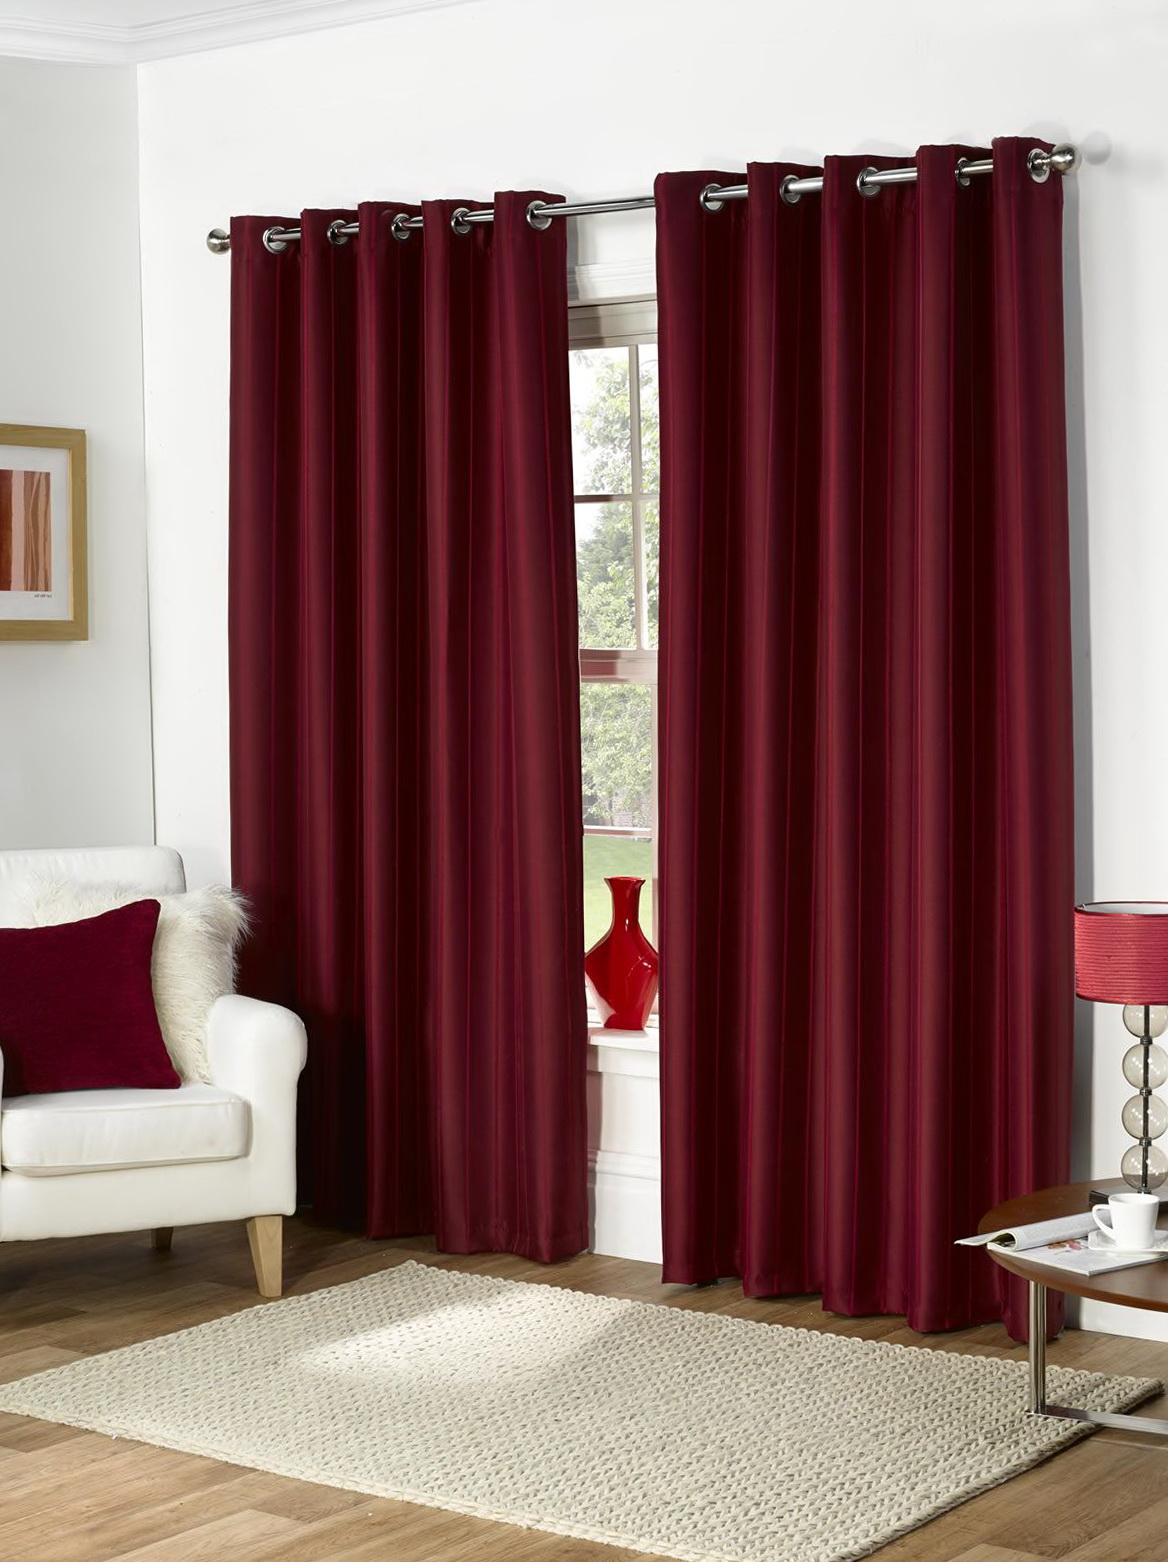 ring top curtains 90 90 home design ideas. Black Bedroom Furniture Sets. Home Design Ideas